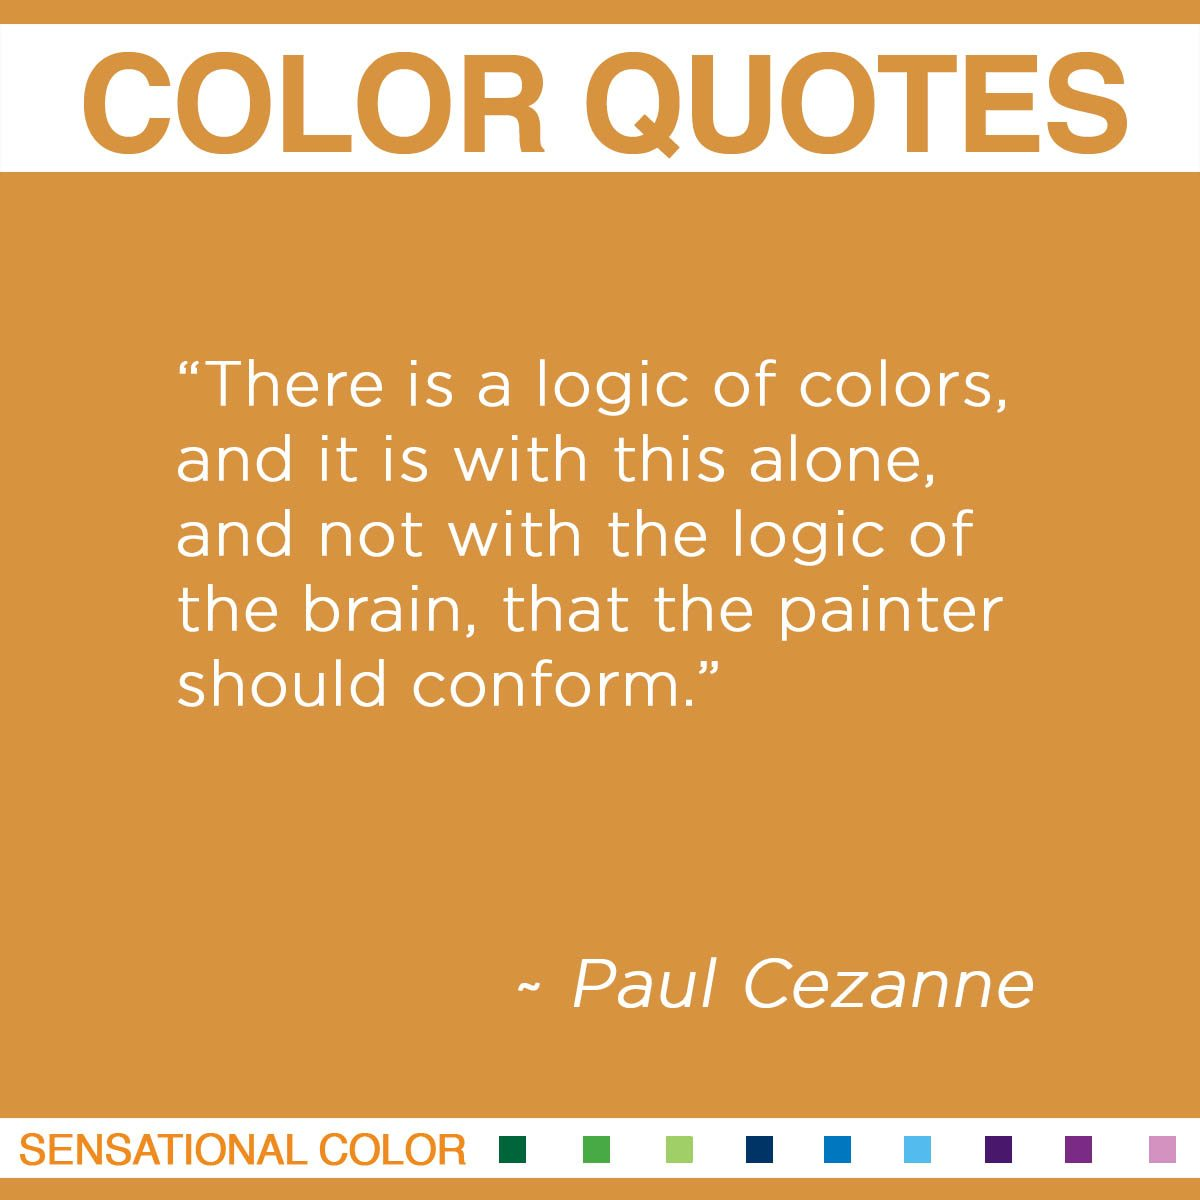 """There is a logic of colors, and it is with this alone, and not with the logic of the brain, that the painter should conform."" - Paul Cezanne"